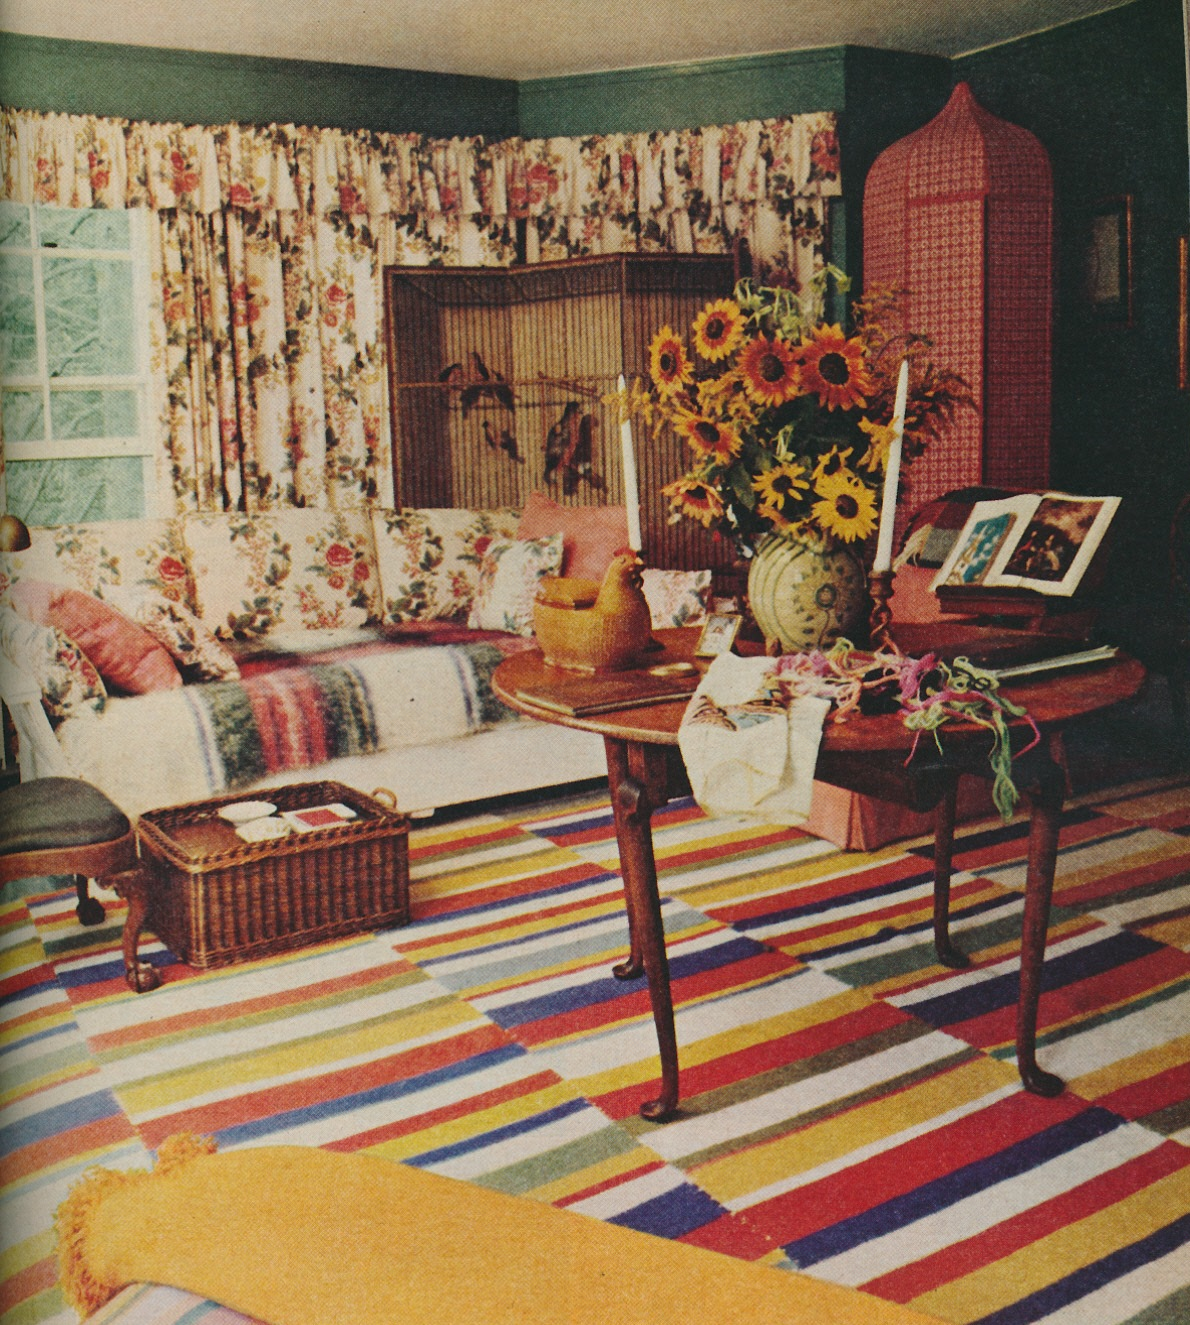 mrs parishs sitting room the rug was irish made the interesting looking corner cabinet held sweaters - Sister Parrish